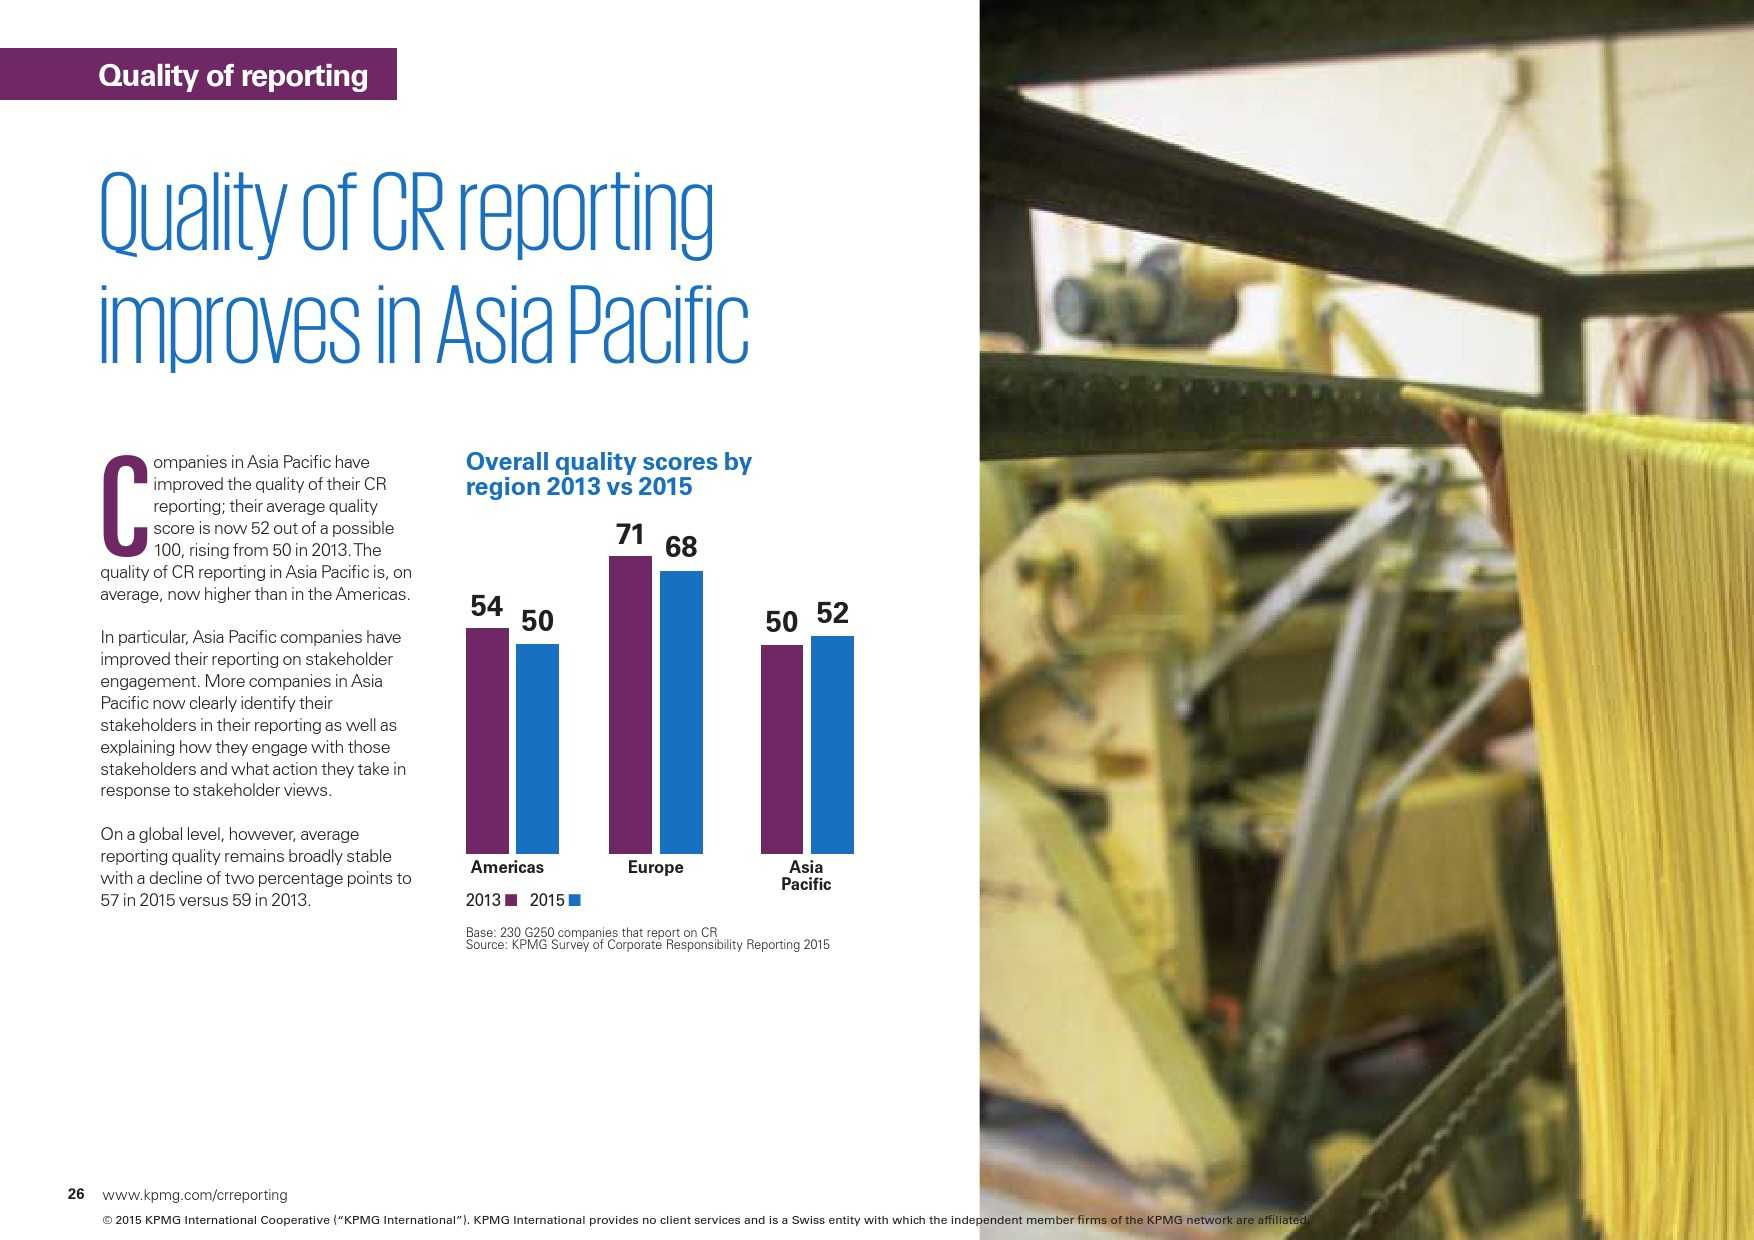 kpmg-international-survey-of-corporate-responsibility-reporting-2015_000026